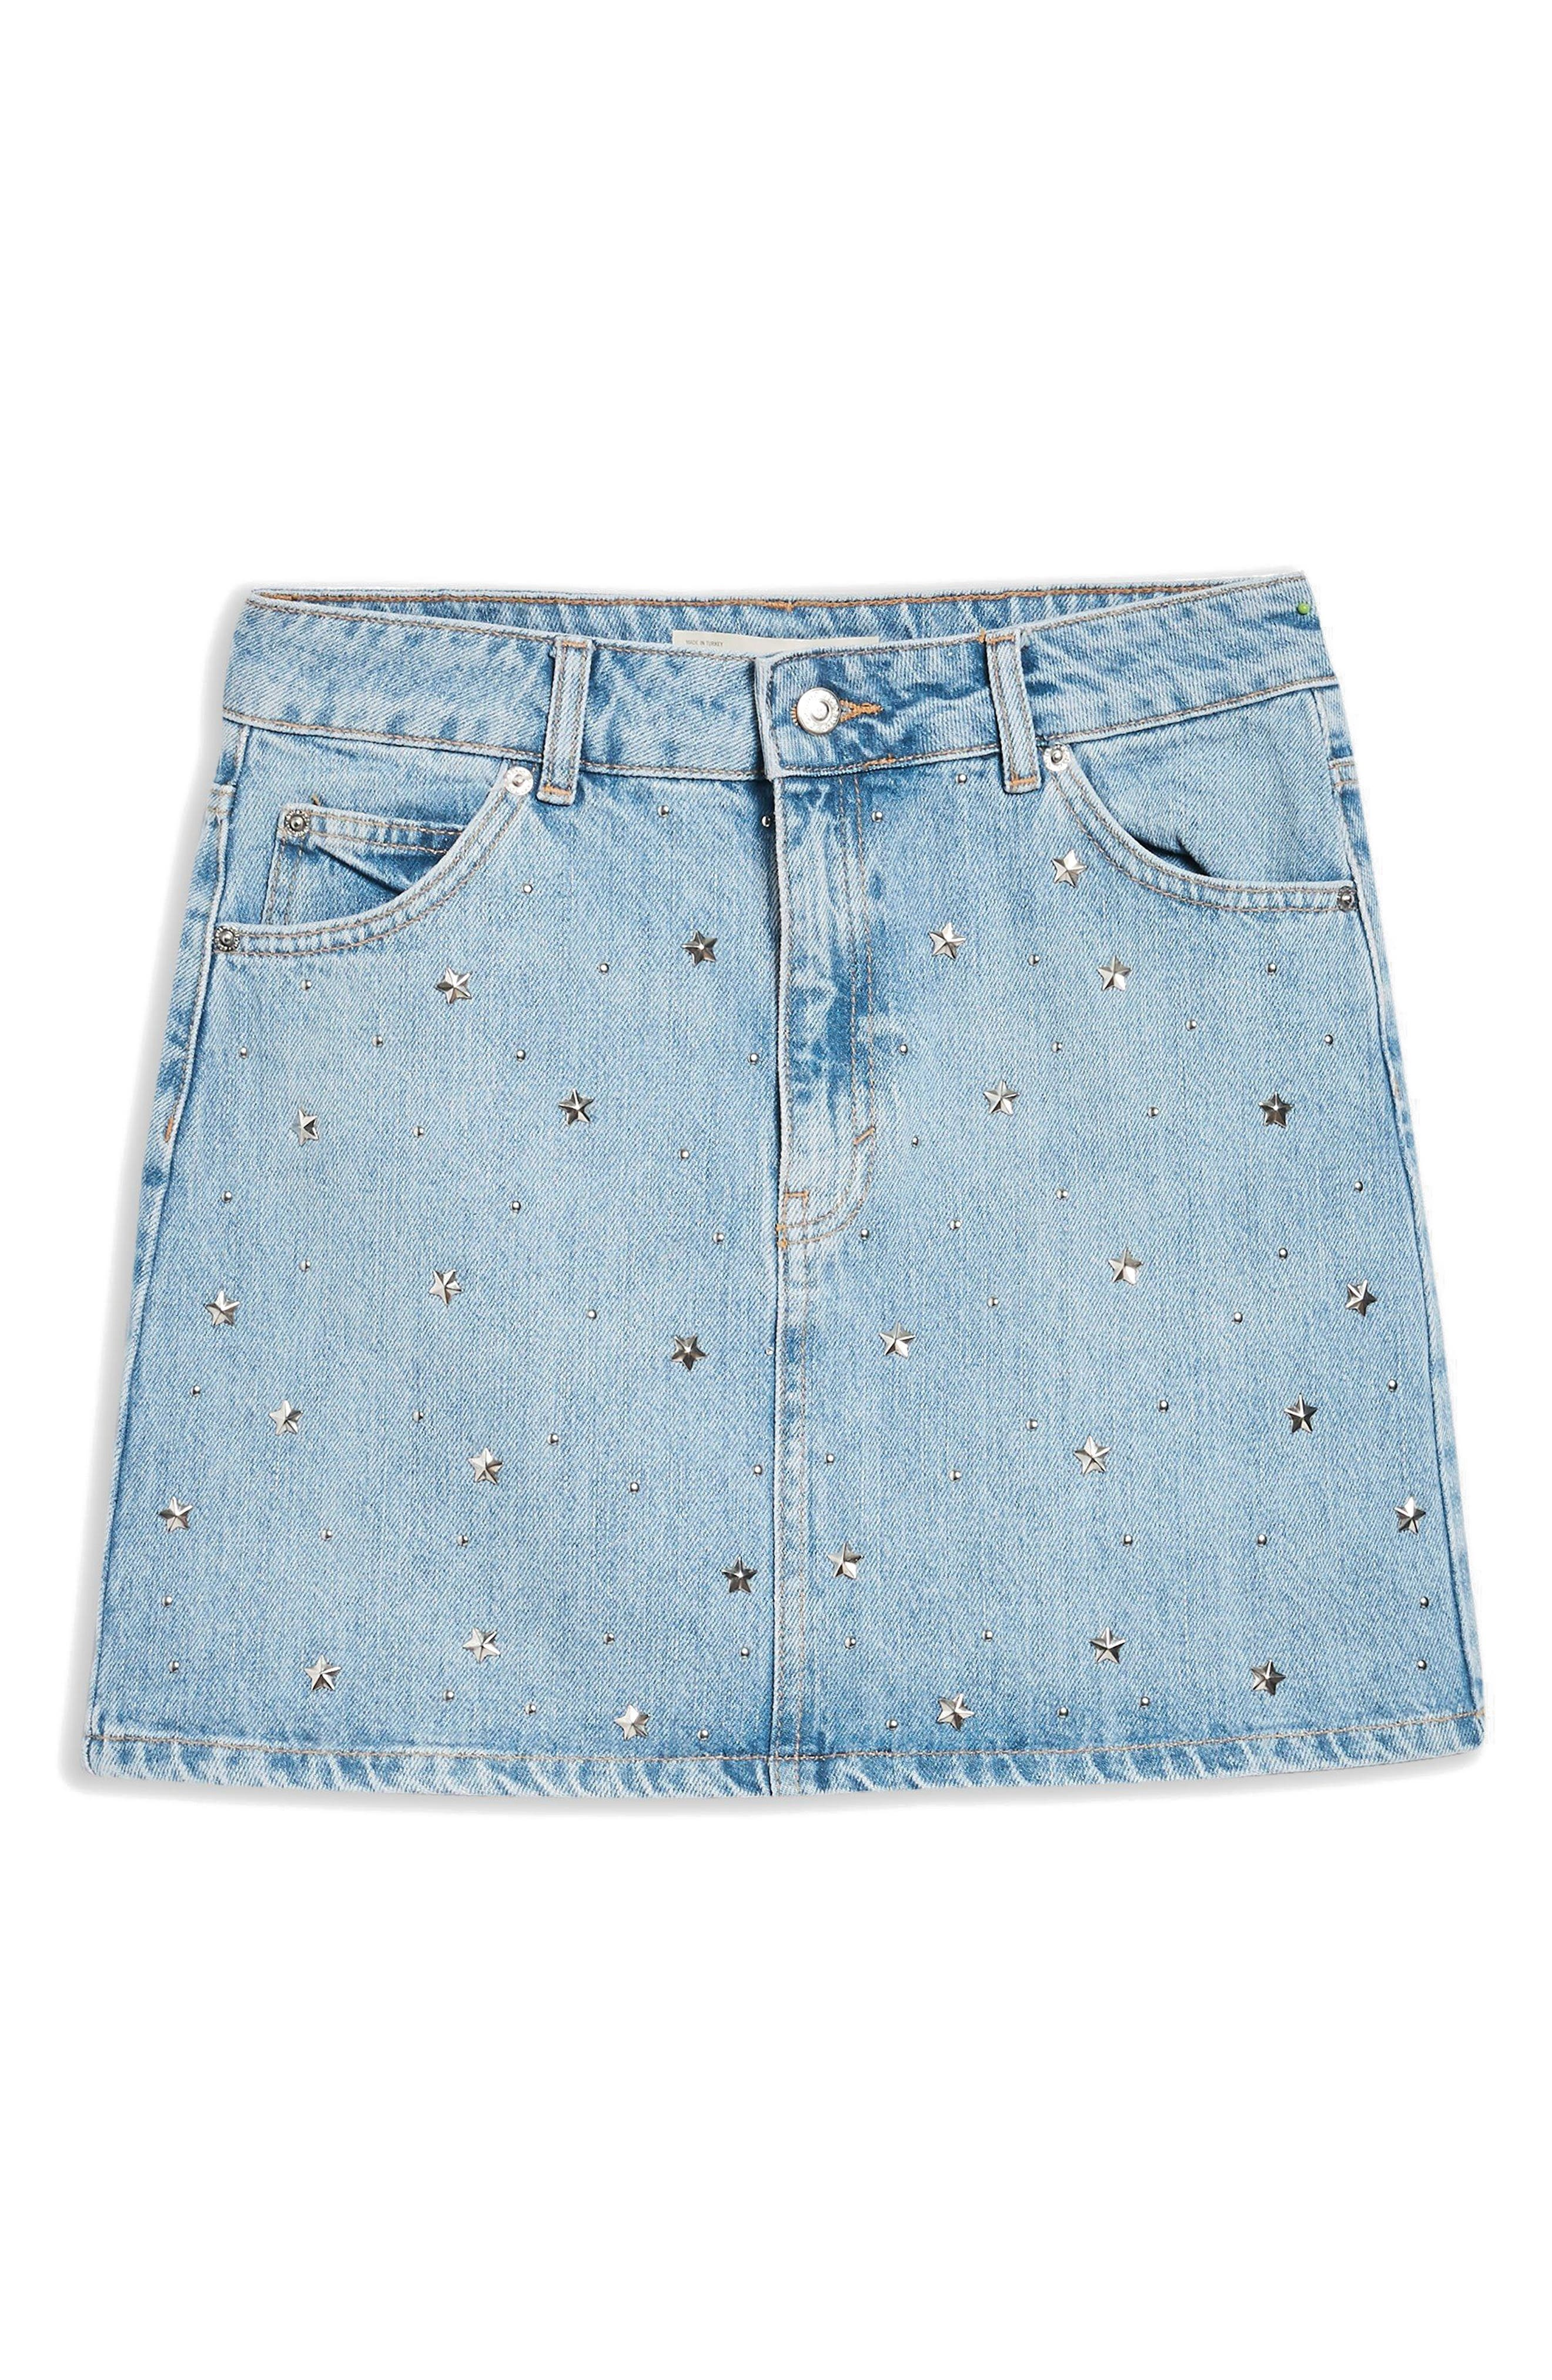 MOTO Star Studded High Waist Skirt,                             Alternate thumbnail 3, color,